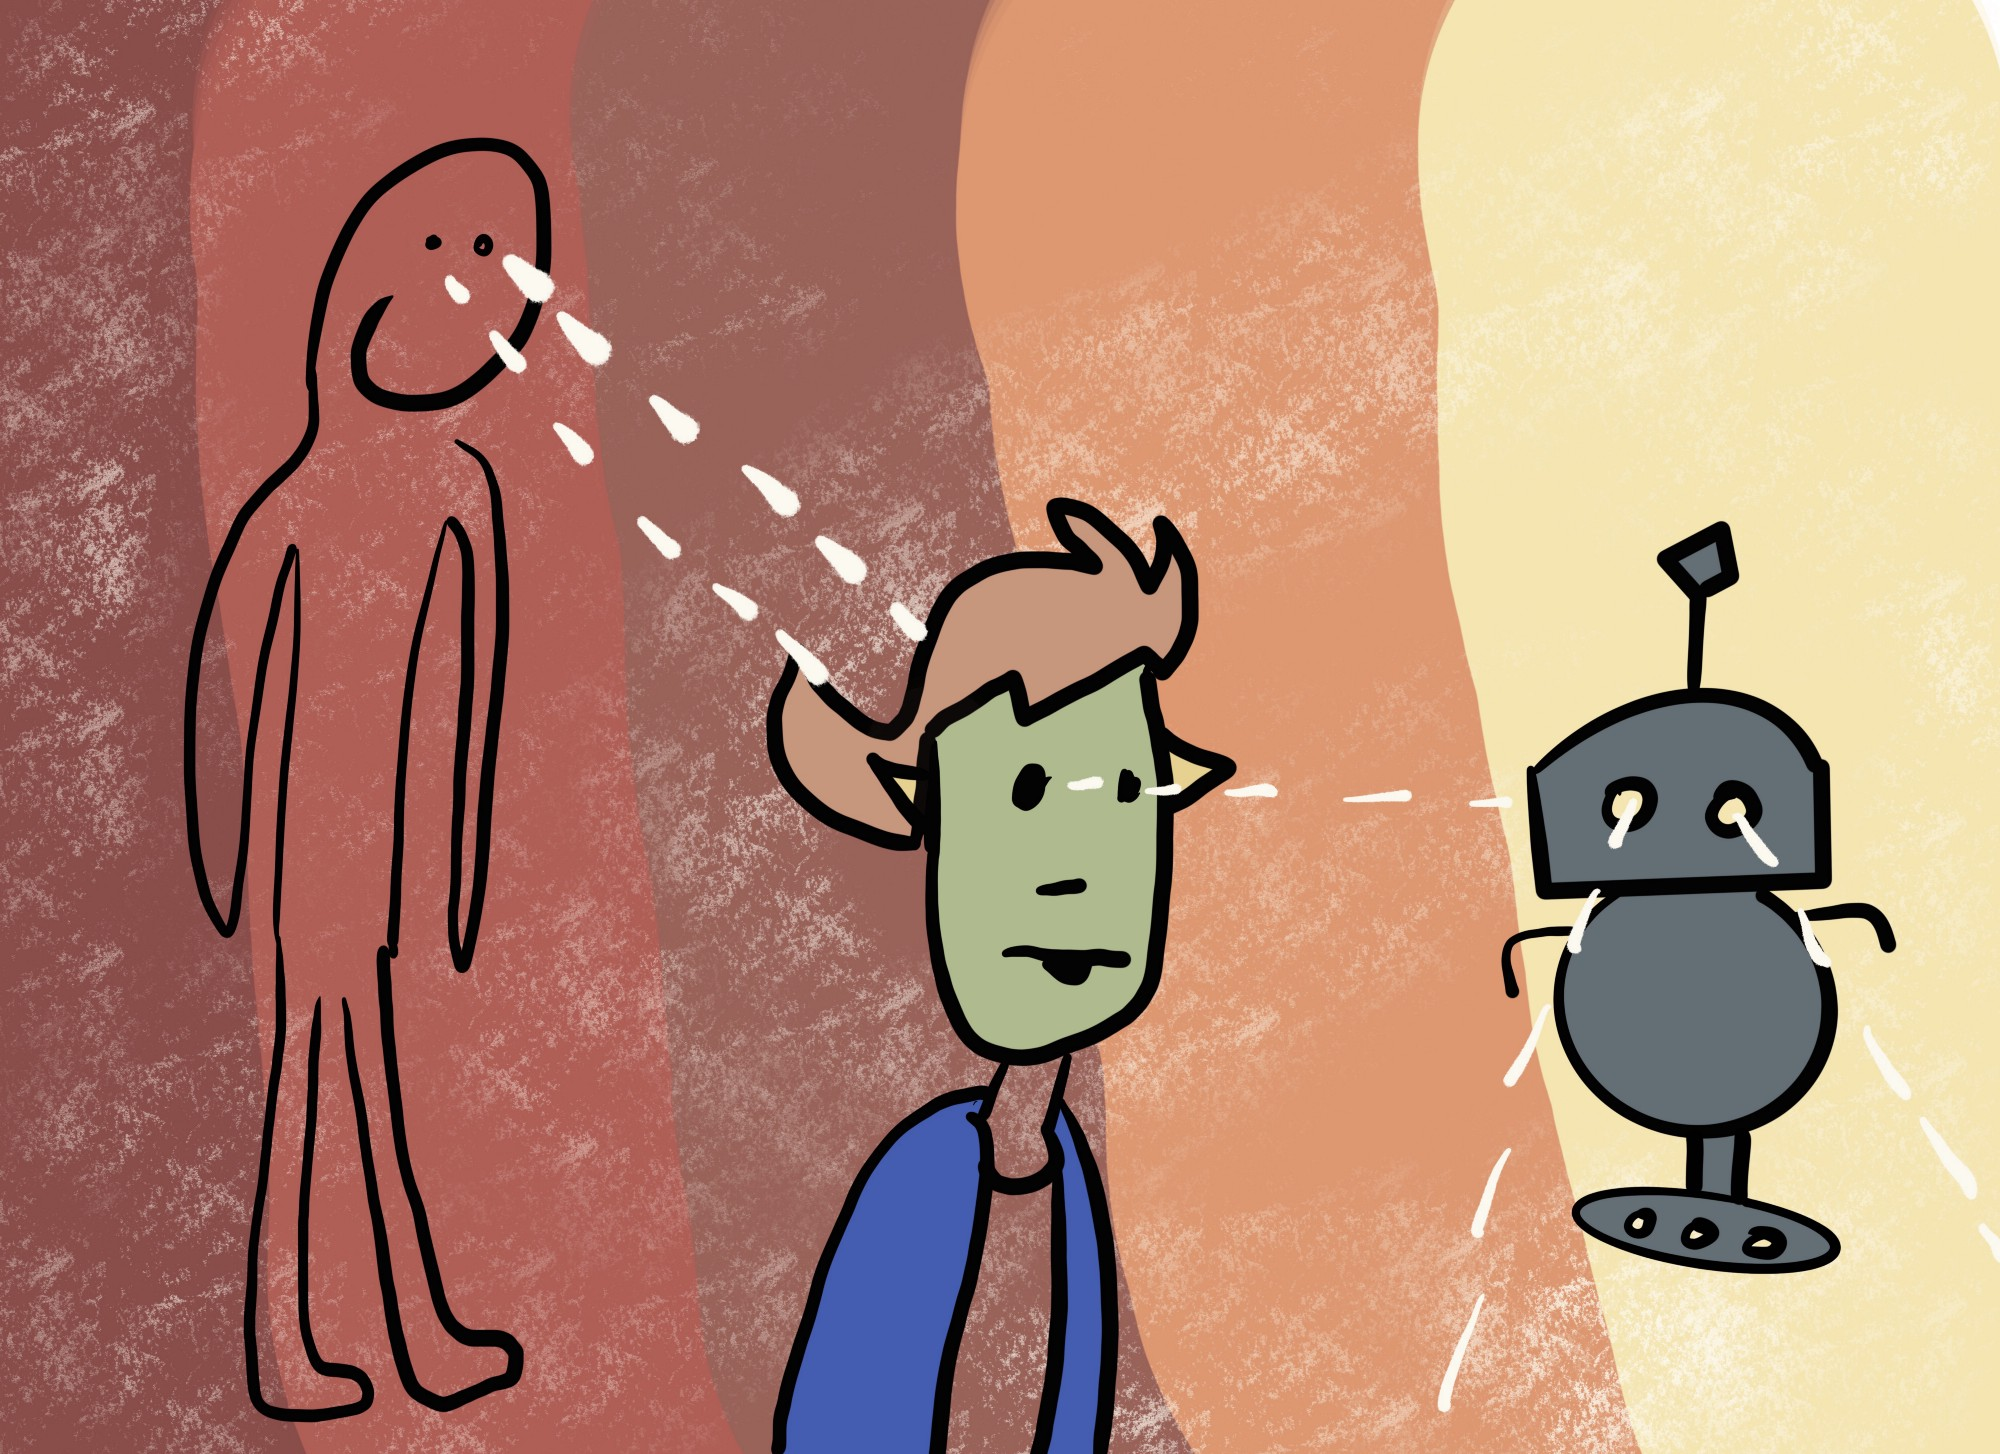 An illustration of a person staring at another person staring at a robot. White lines indicate lines of sight.